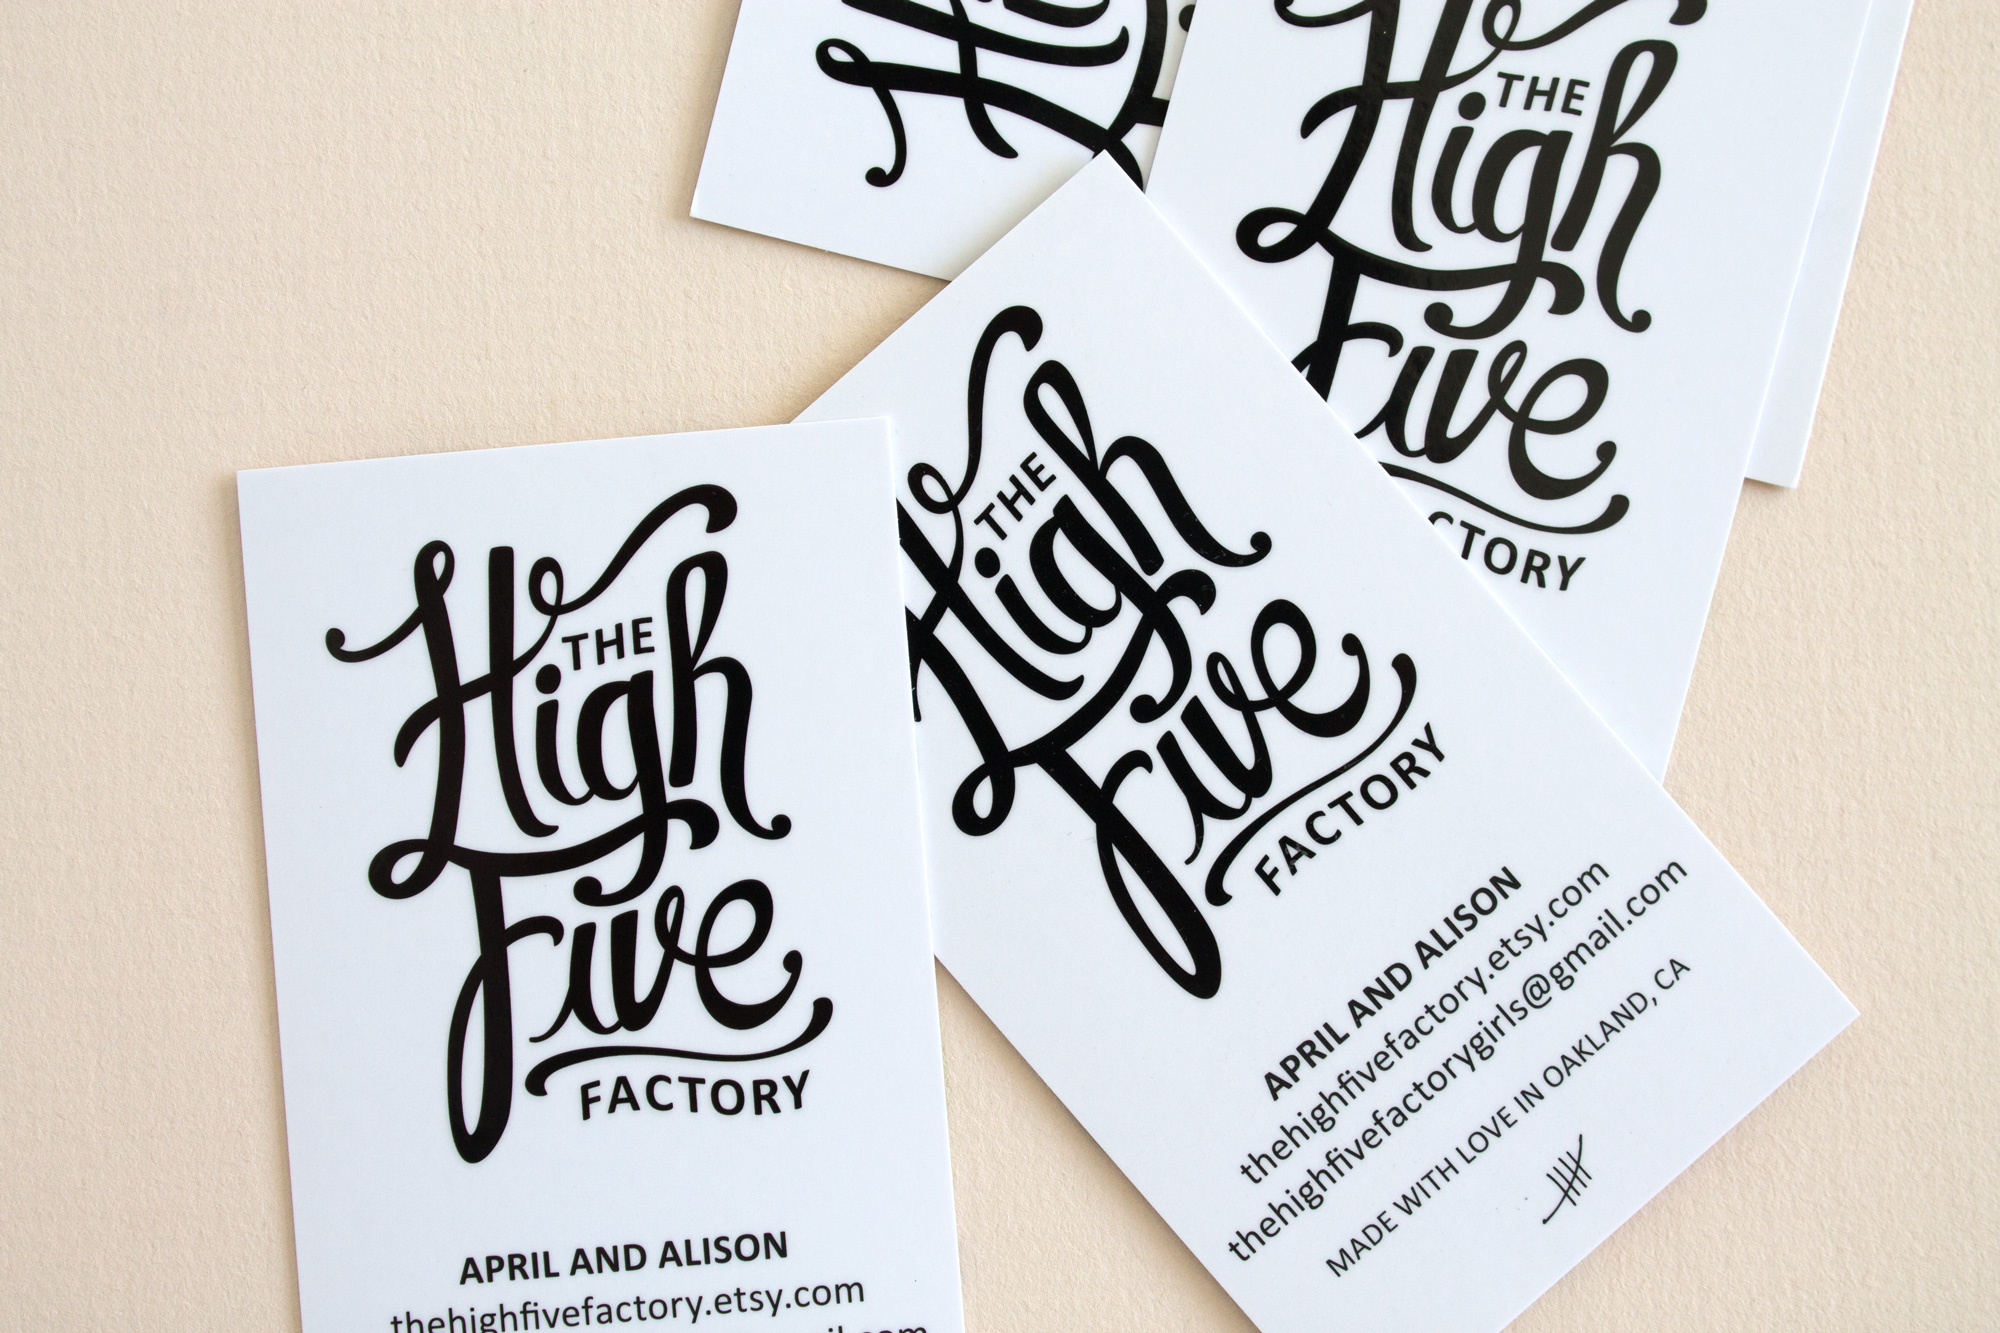 Logotype for The High Five Factory